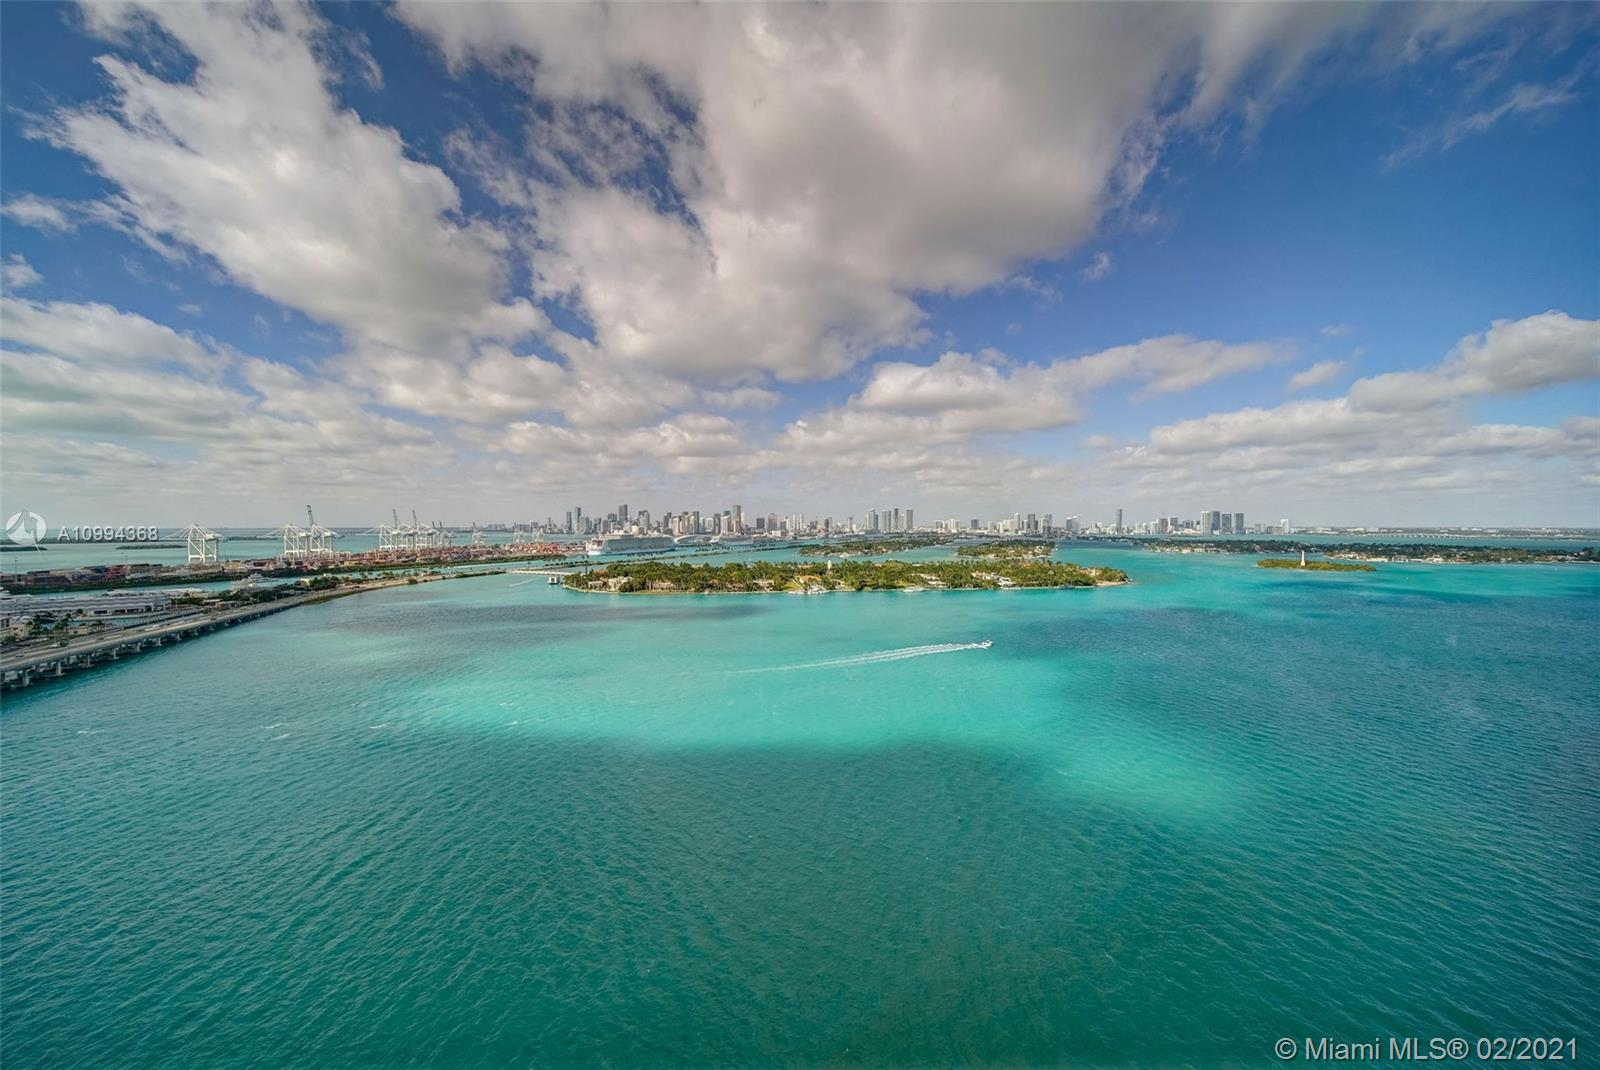 Spectacular and unobstructed views of Biscayne Bay and the Miami skyline. This stunning 3 Bedroom 2 Bath 1,372SqFt (see attached floor plan)  residence has been nicely renovated, highlighted by a new kitchen with quartz counter top and stainless steel appliances.  Perfect for entertaining with a counter height bar opening to a bright living space with awesome views.   This unit also features updated art inspired bathrooms, and in unit washer/dryer plus 2 parking spaces in the garage. The Floridian is a full amenity bay front building on Miami Beach.  Amenities includes 2 bay front pools, jacuzzi, tennis, poolside food/beverage, concierge, salon, gym & onsite gourmet market . The West Avenue neighborhood offers dining and shopping at your doorstep.   Convenient access to the causeway.